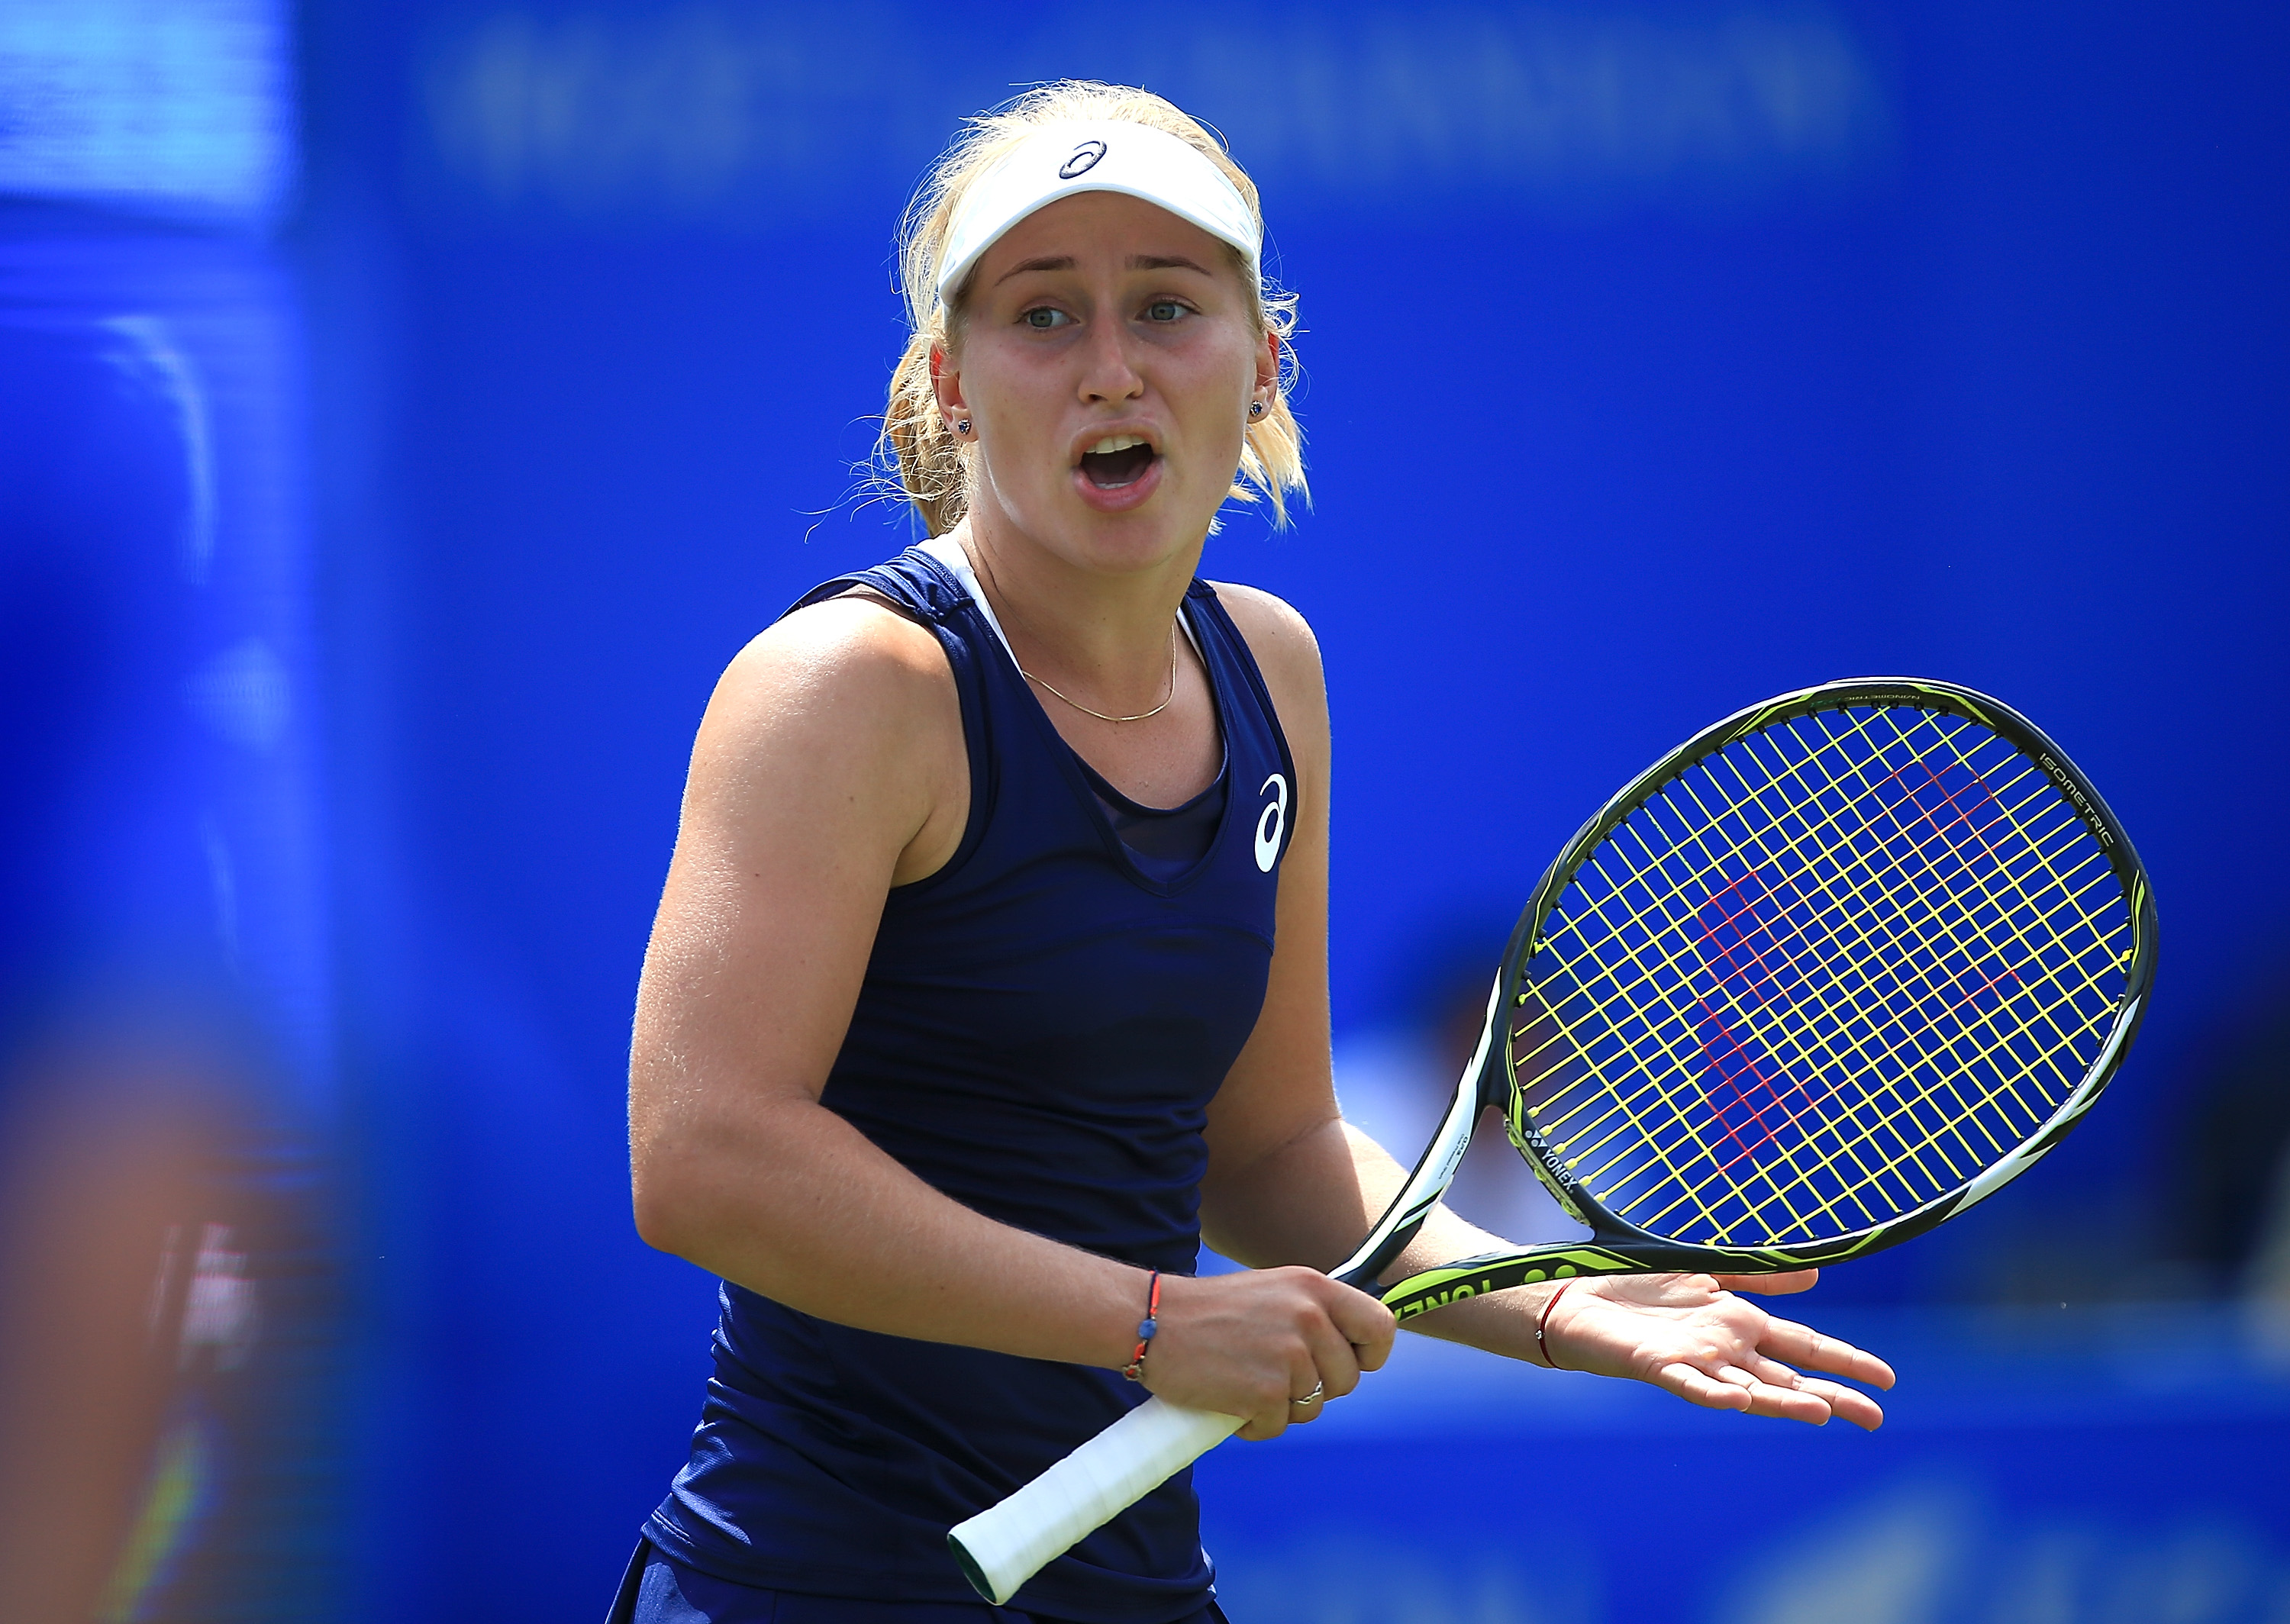 Dream comeback continues for Kvitova as she wins the Aegon Classic title